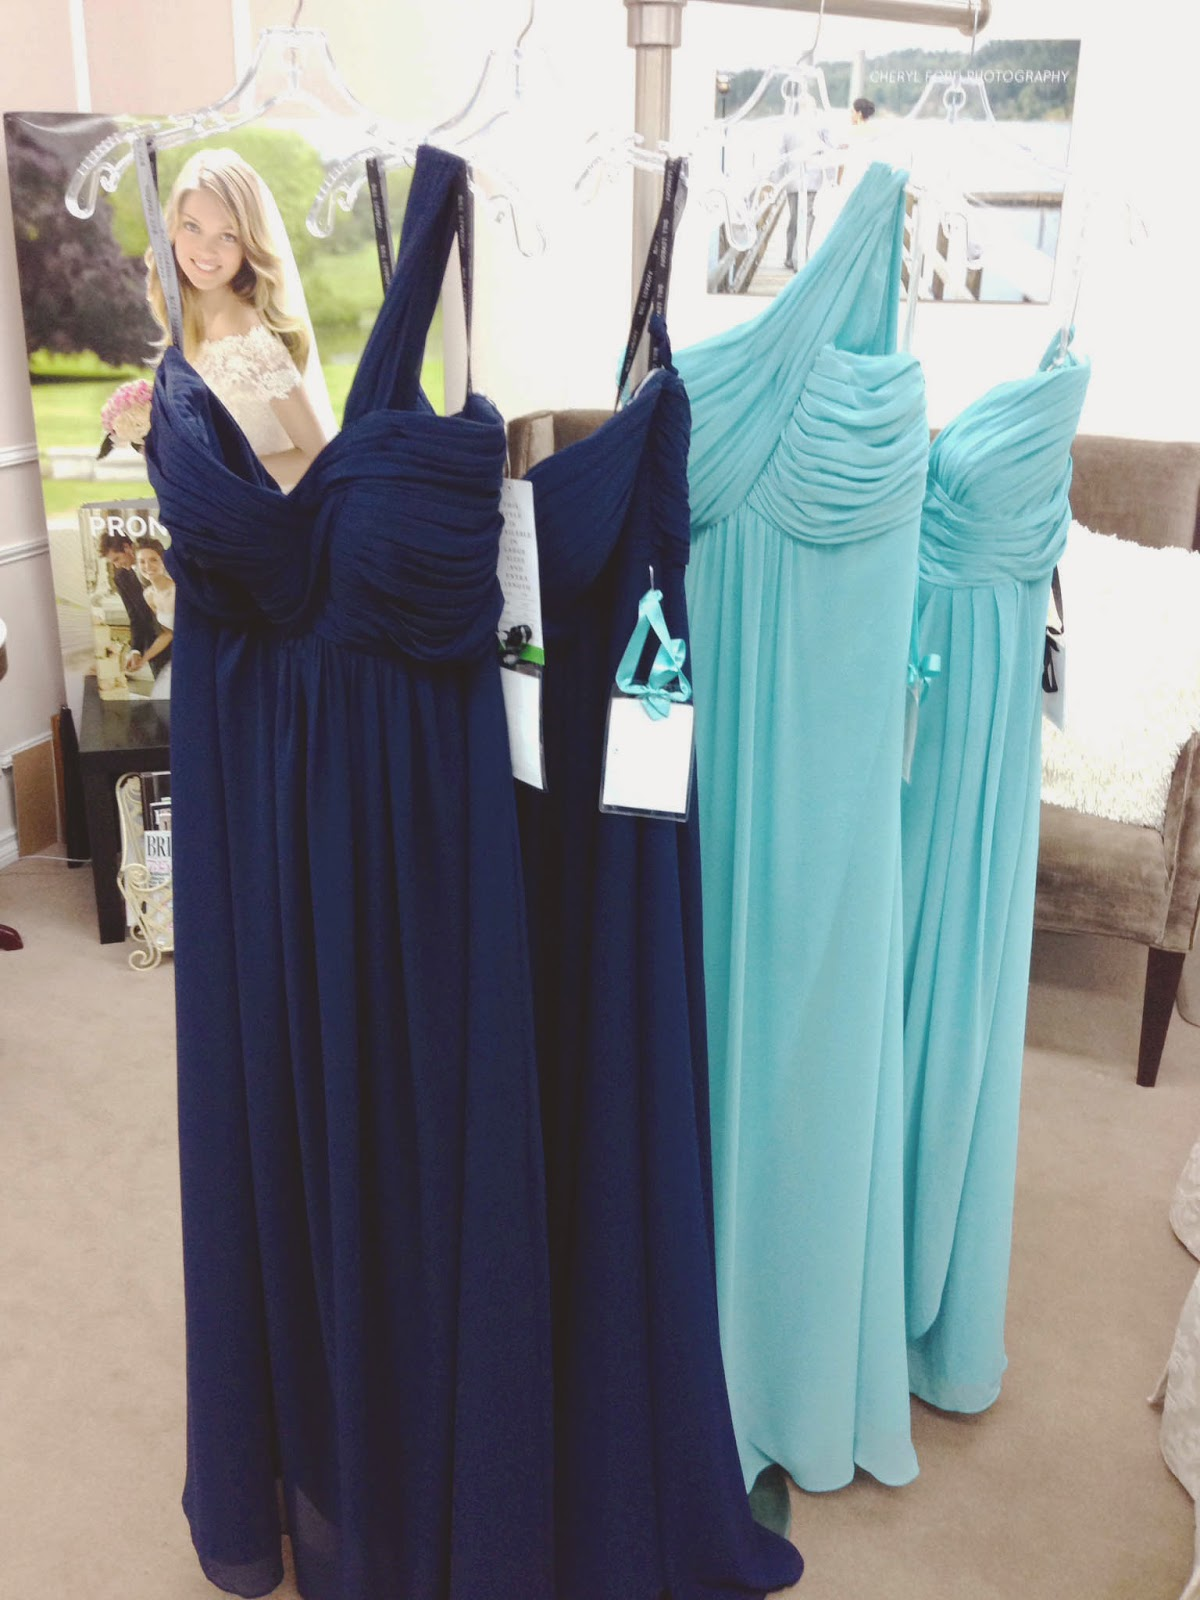 A princess bride couture bridal salon bridesmaid dresses for A princess bride couture bridal salon